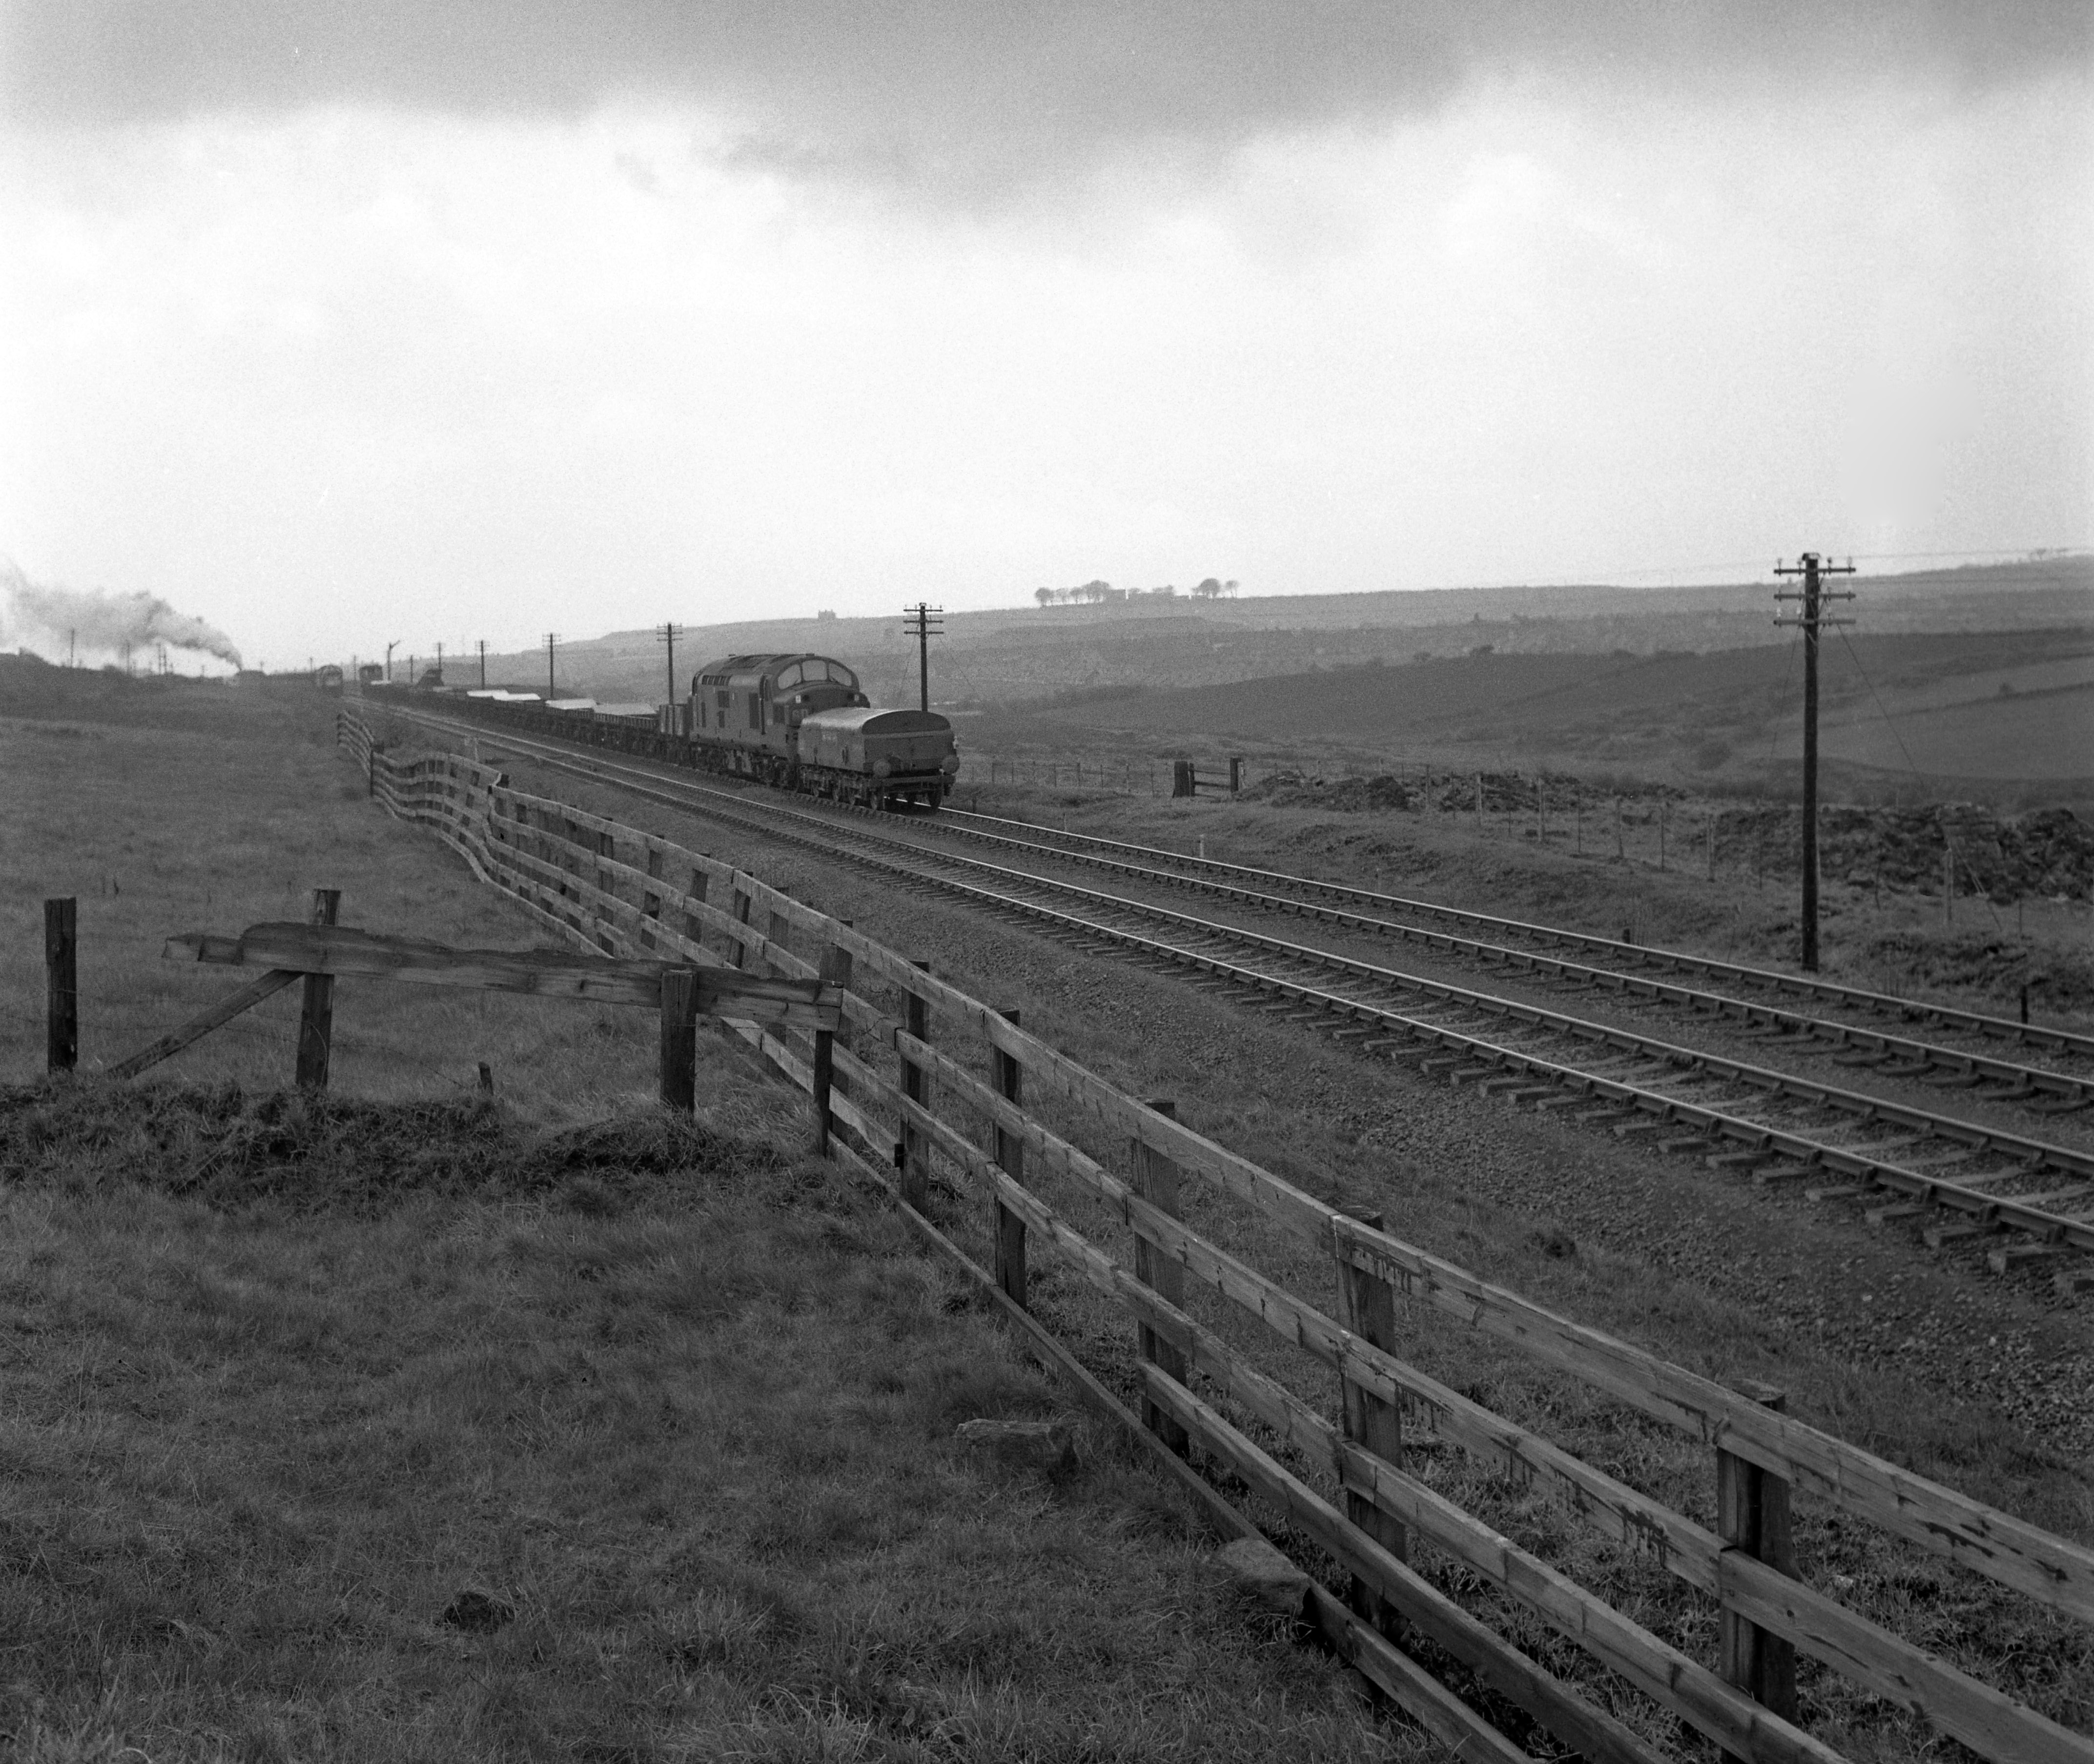 D6789 at Annfield Plain heading towards Stanley on 27 April 1965. Note the iron ore train heading towards Consett. Photo copyright Rail Online.